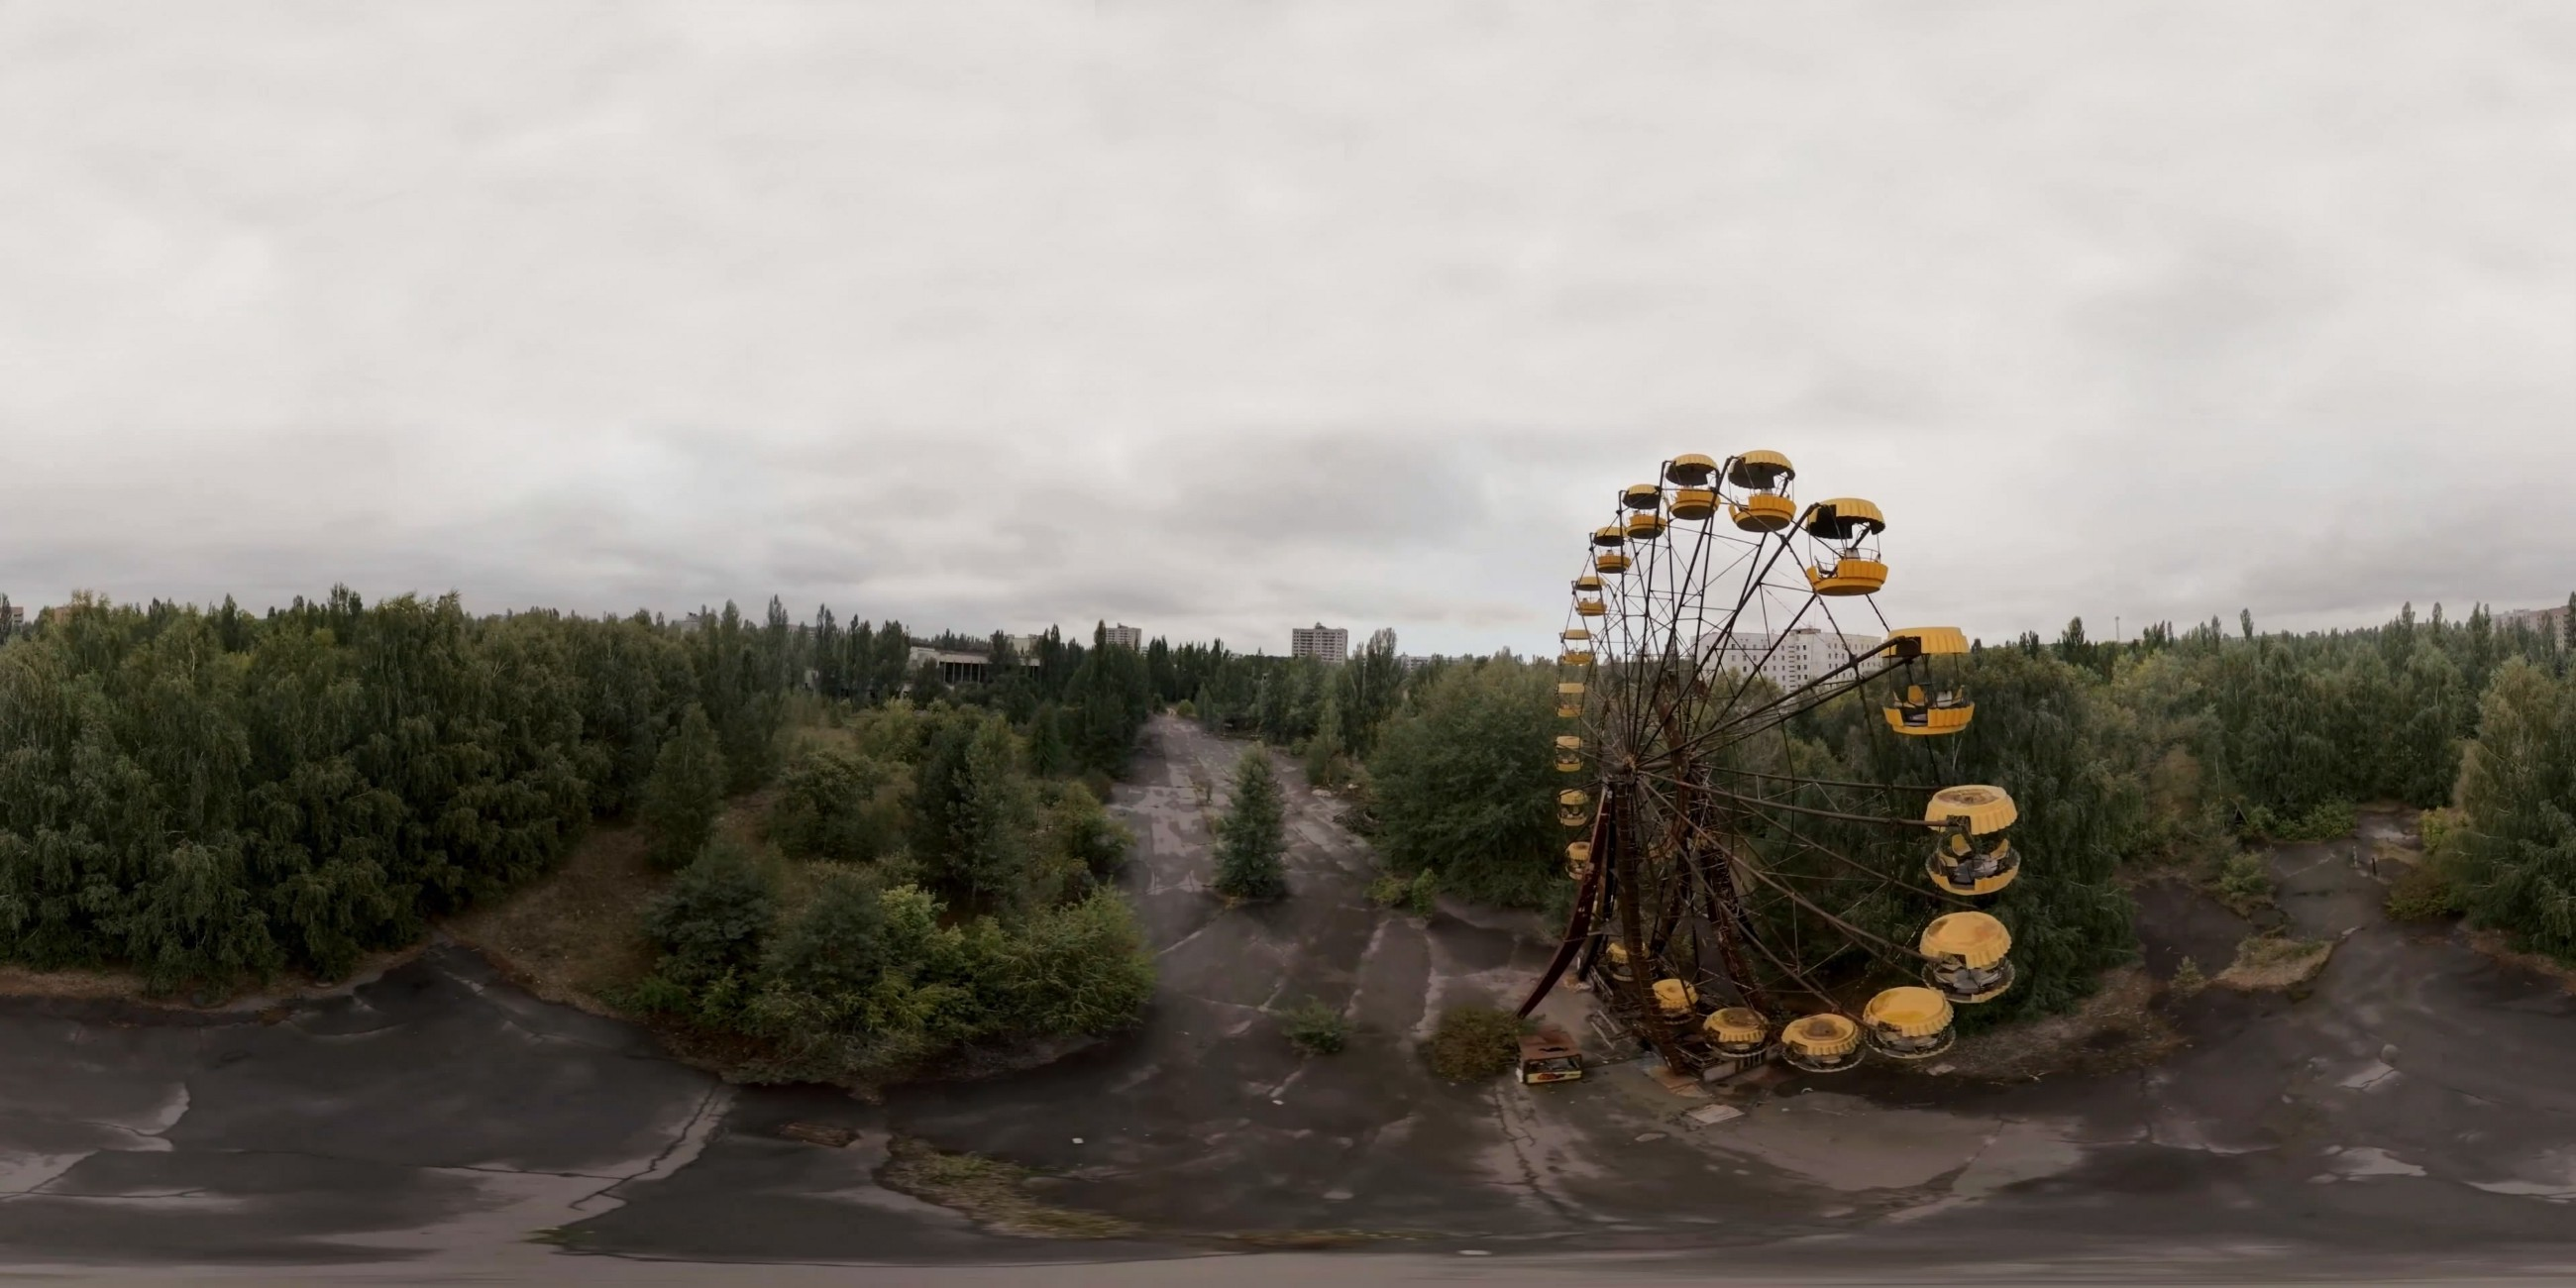 360 chernobyl ferries wheel